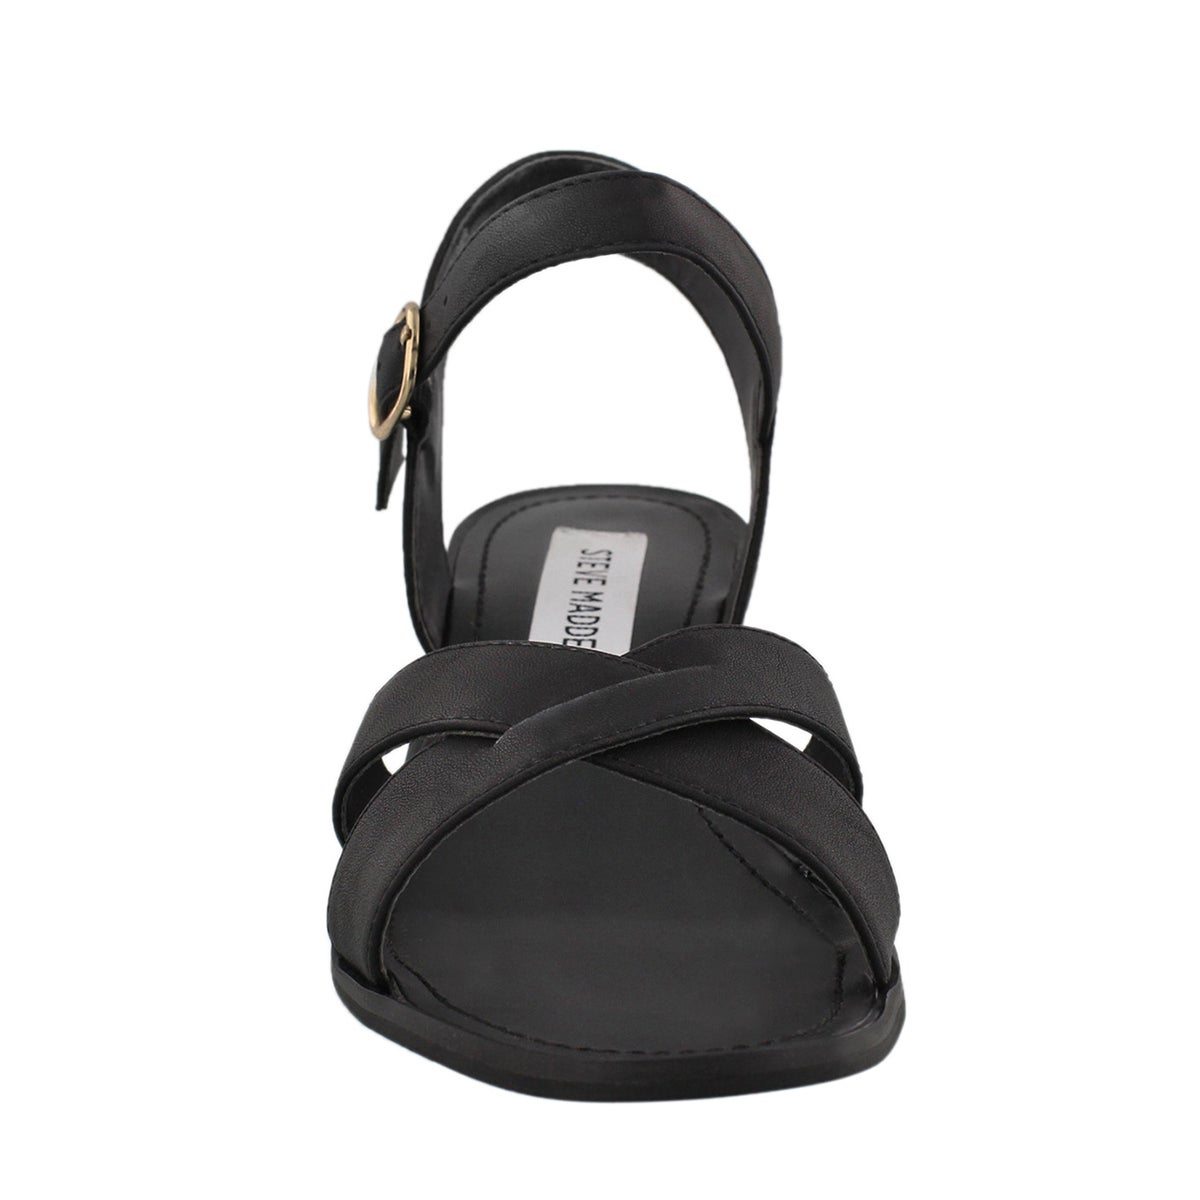 Lds Fatima black dress sandal